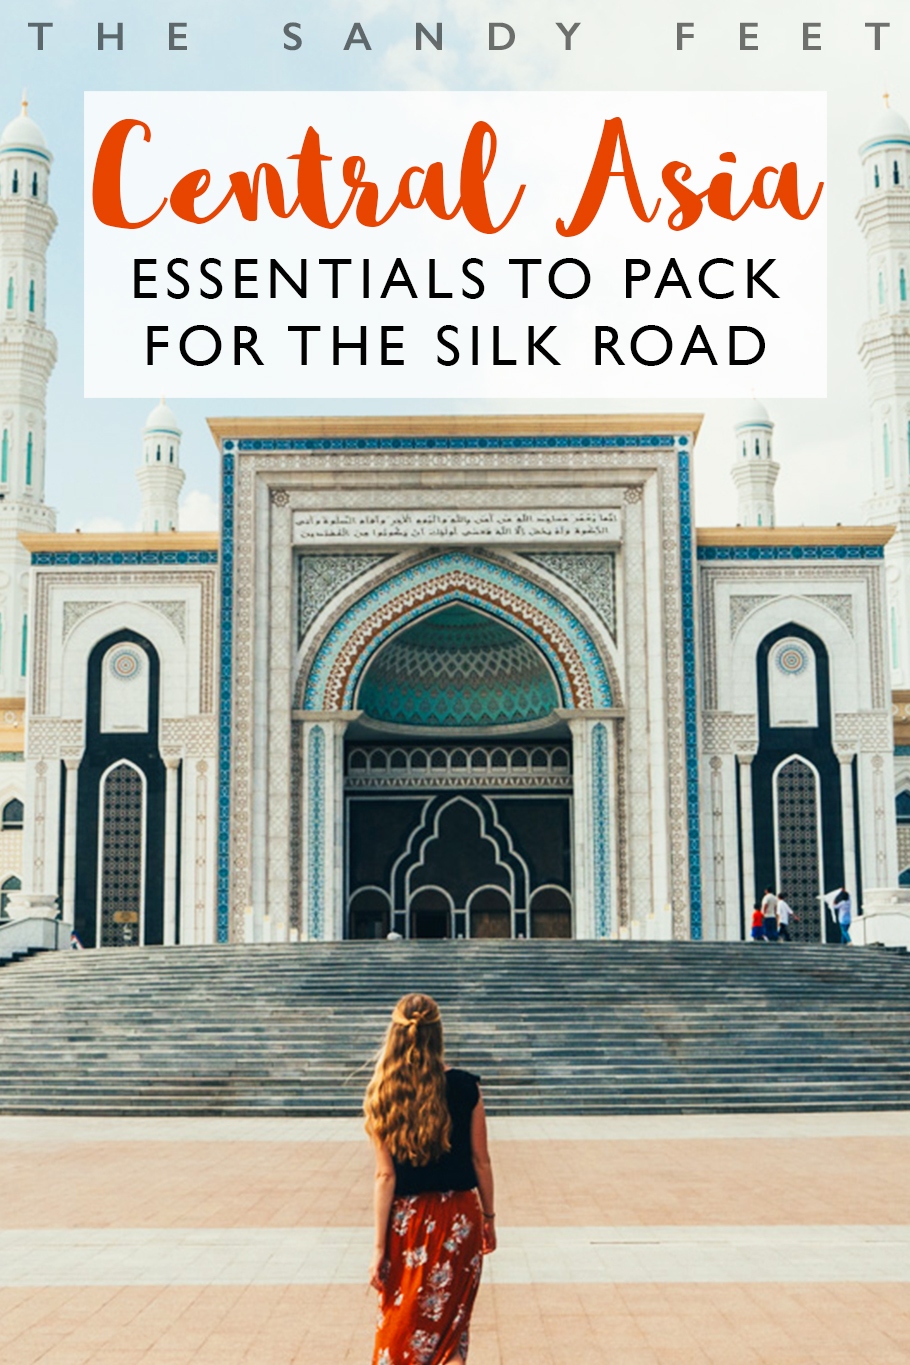 The Ultimate Packing Guide For Central Asia: All The Essentials You'll Need For A Trip Along The Silk Road